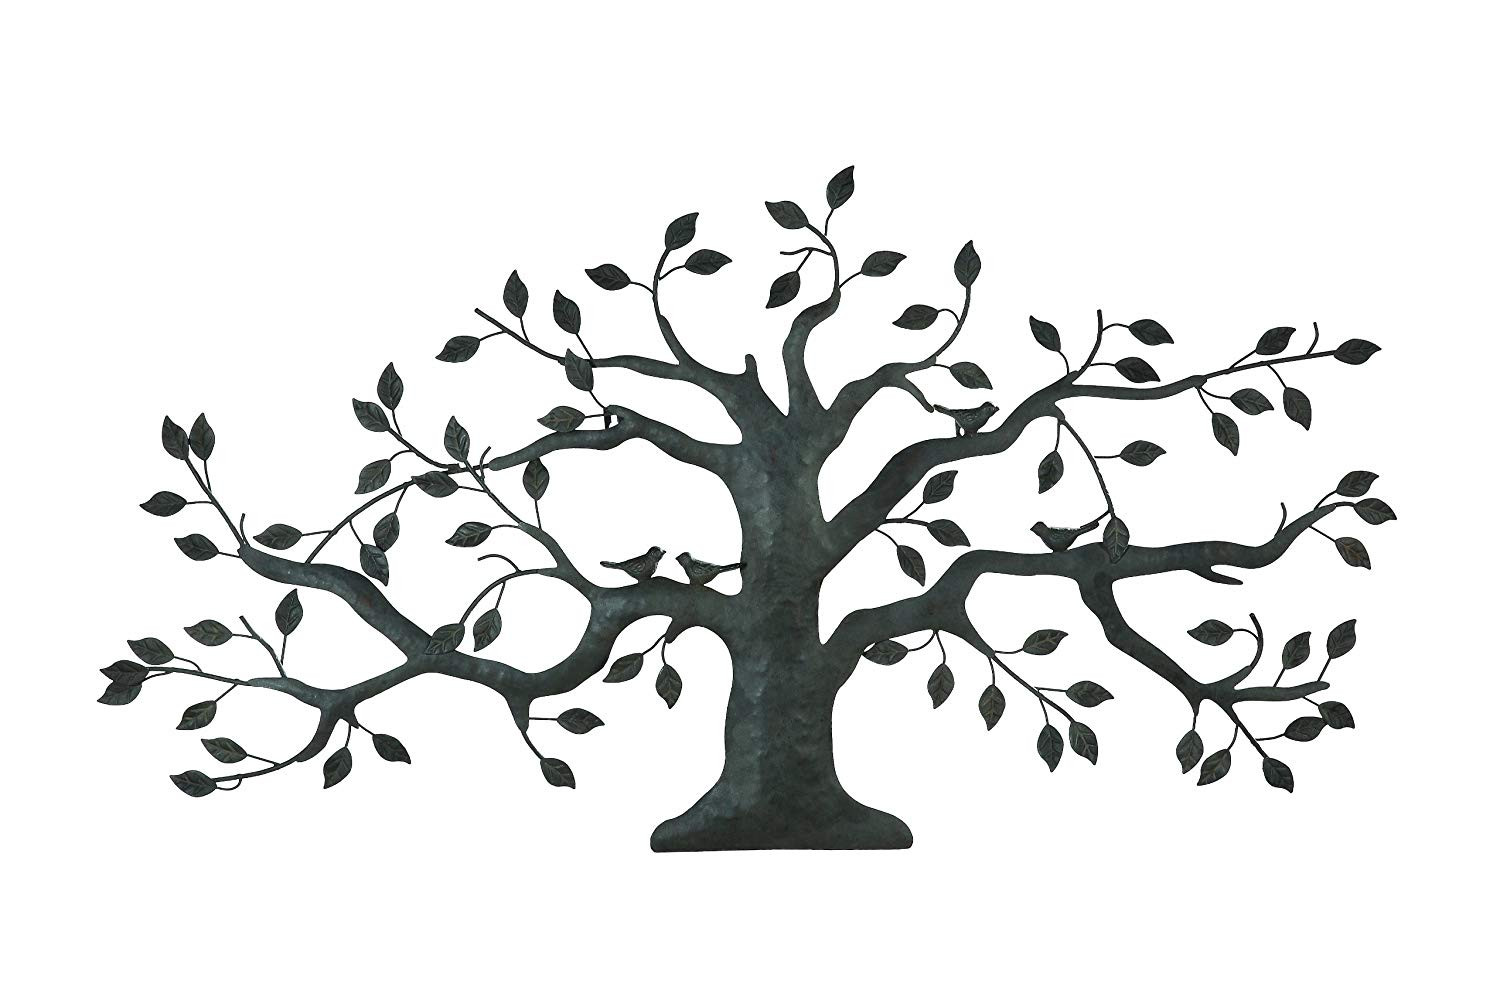 Best ideas about Metal Tree Wall Art . Save or Pin Tree of life metal wall art large decoration with branch Now.